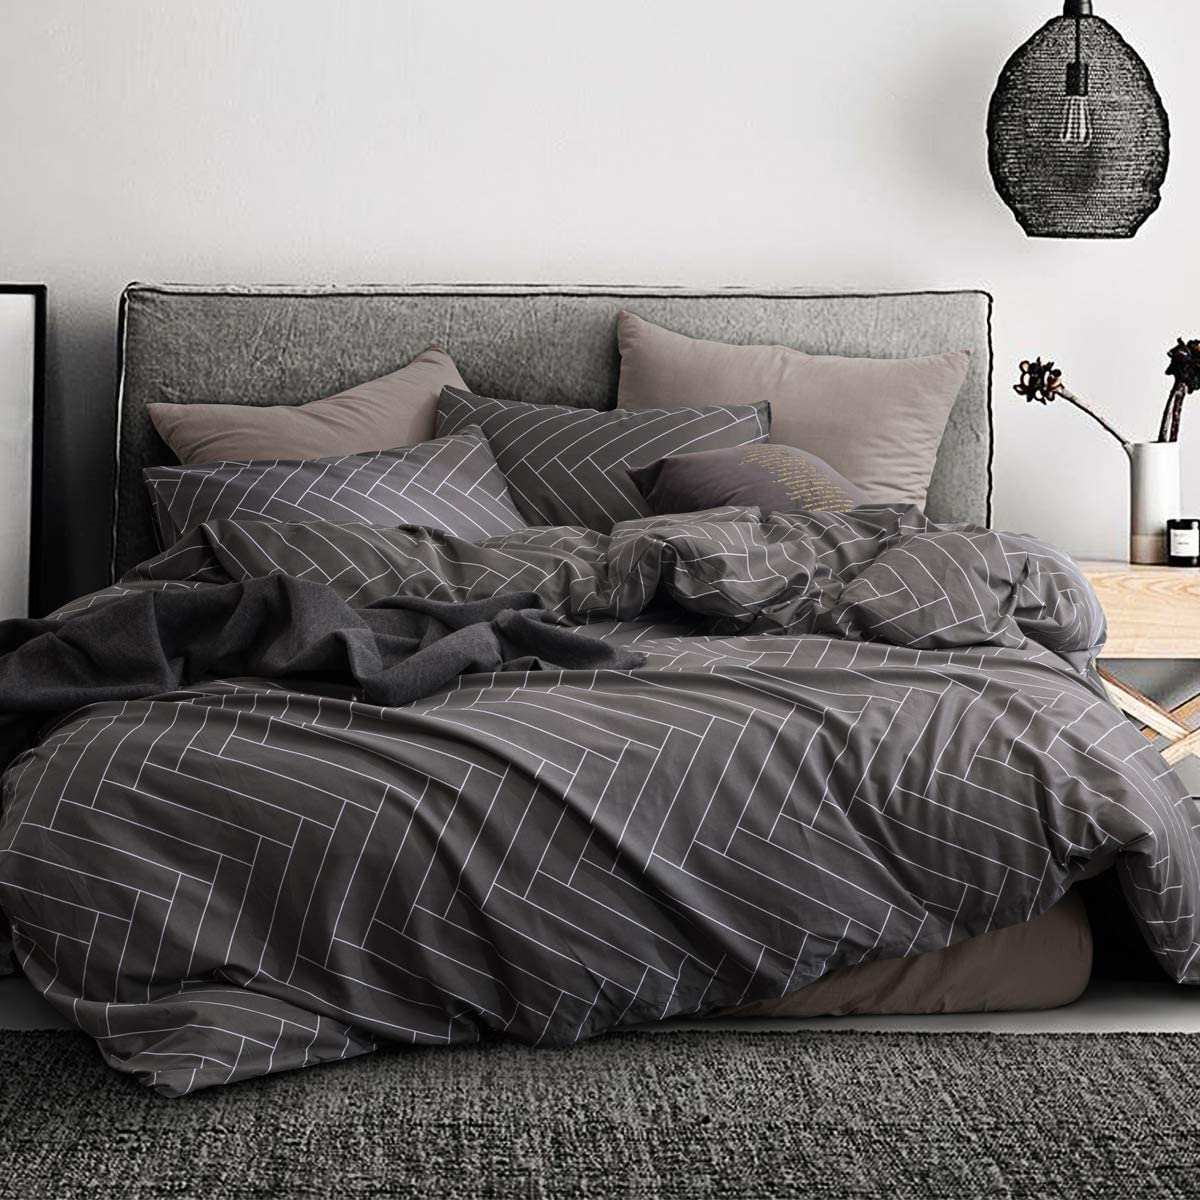 ECOCOTT 3 Pieces Duvet Cover Set Queen 100% Natural Cotton 1 Duvet Cover 2 Pillowcases, Dark Grey and White Herringbone Printed Pattern Soft Cozy Luxury Breathable and Durable Bedding Set